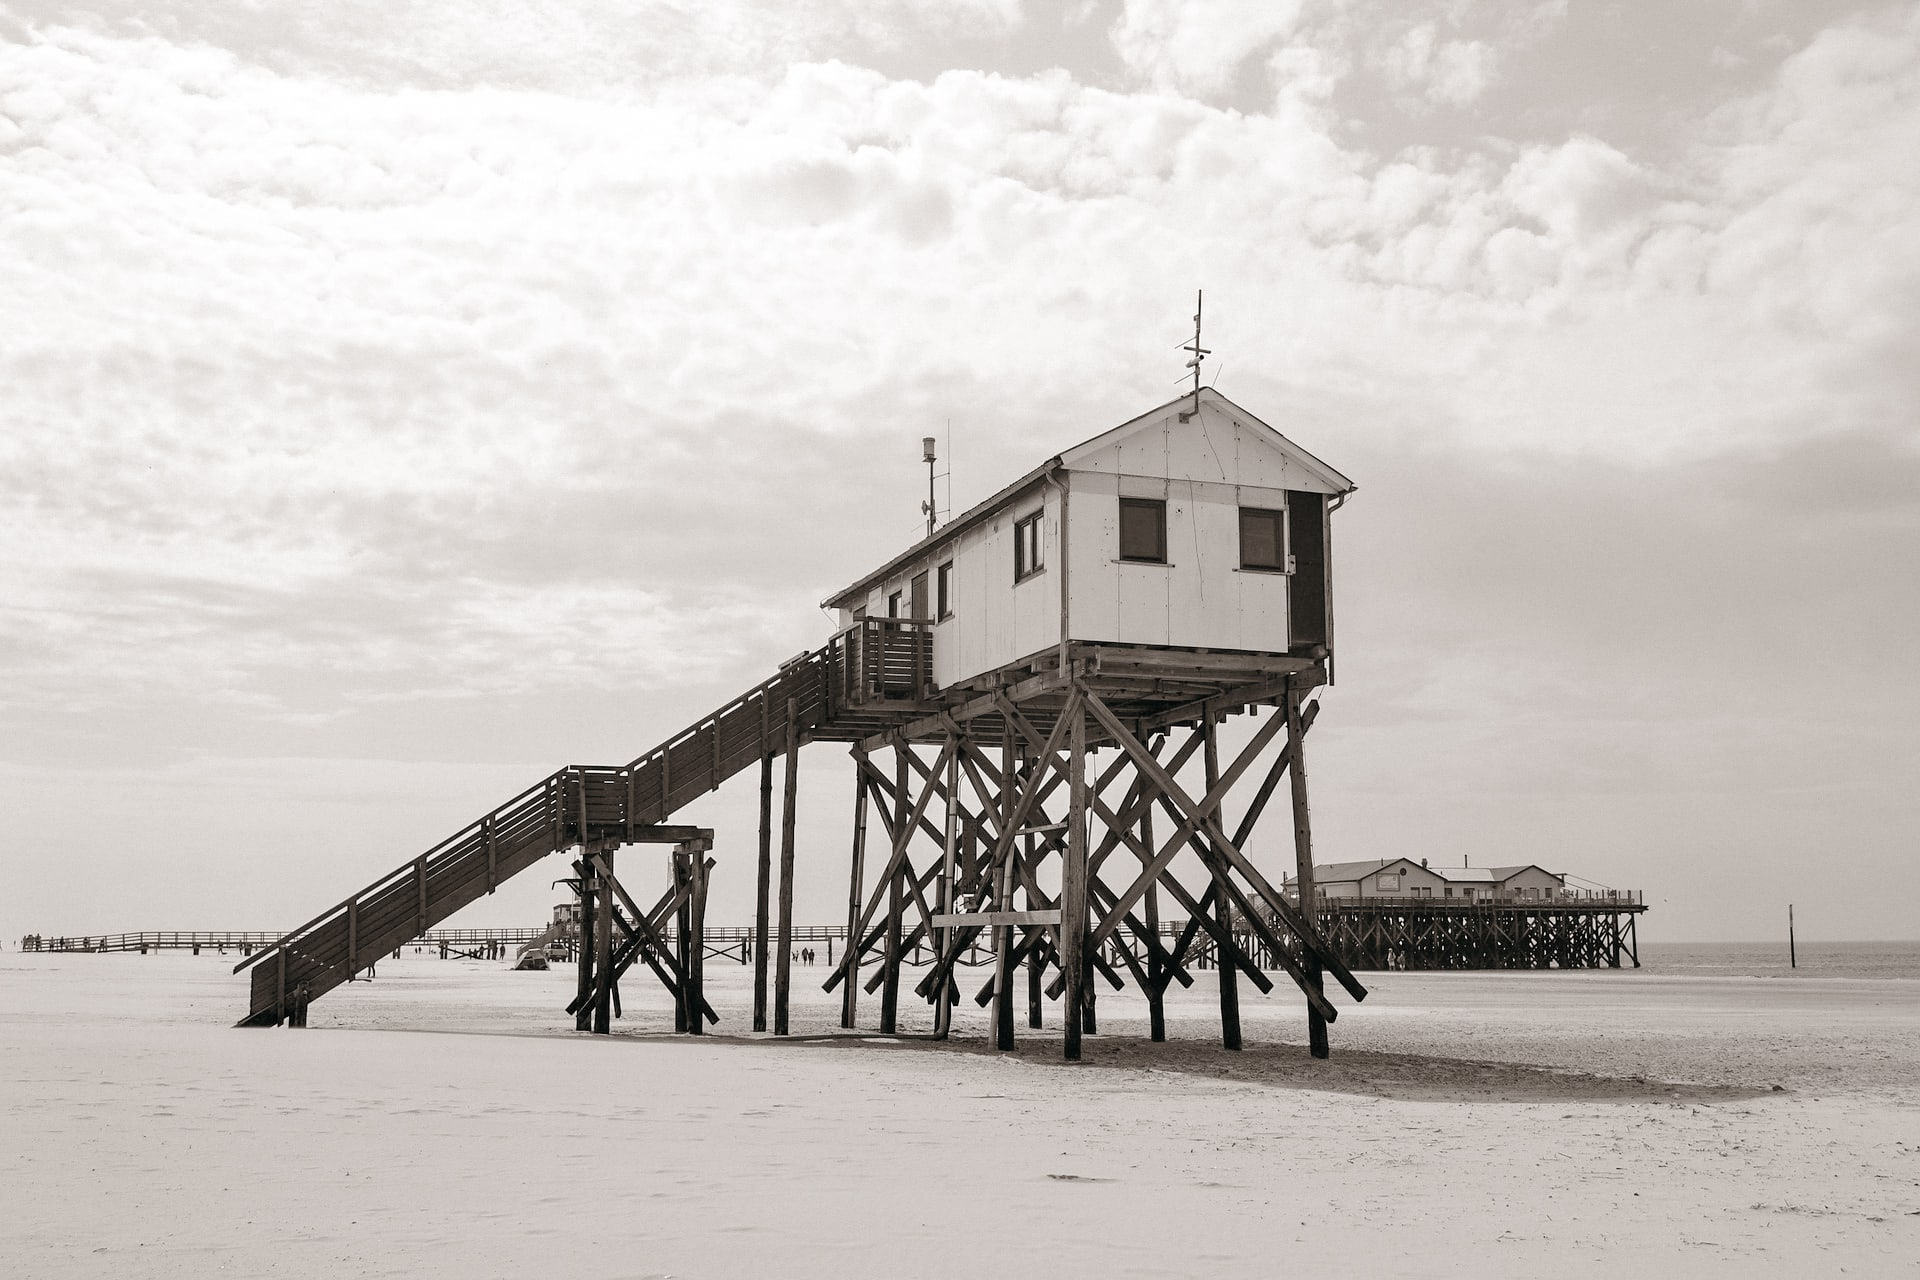 st. peter ording im winter pfahlbauten